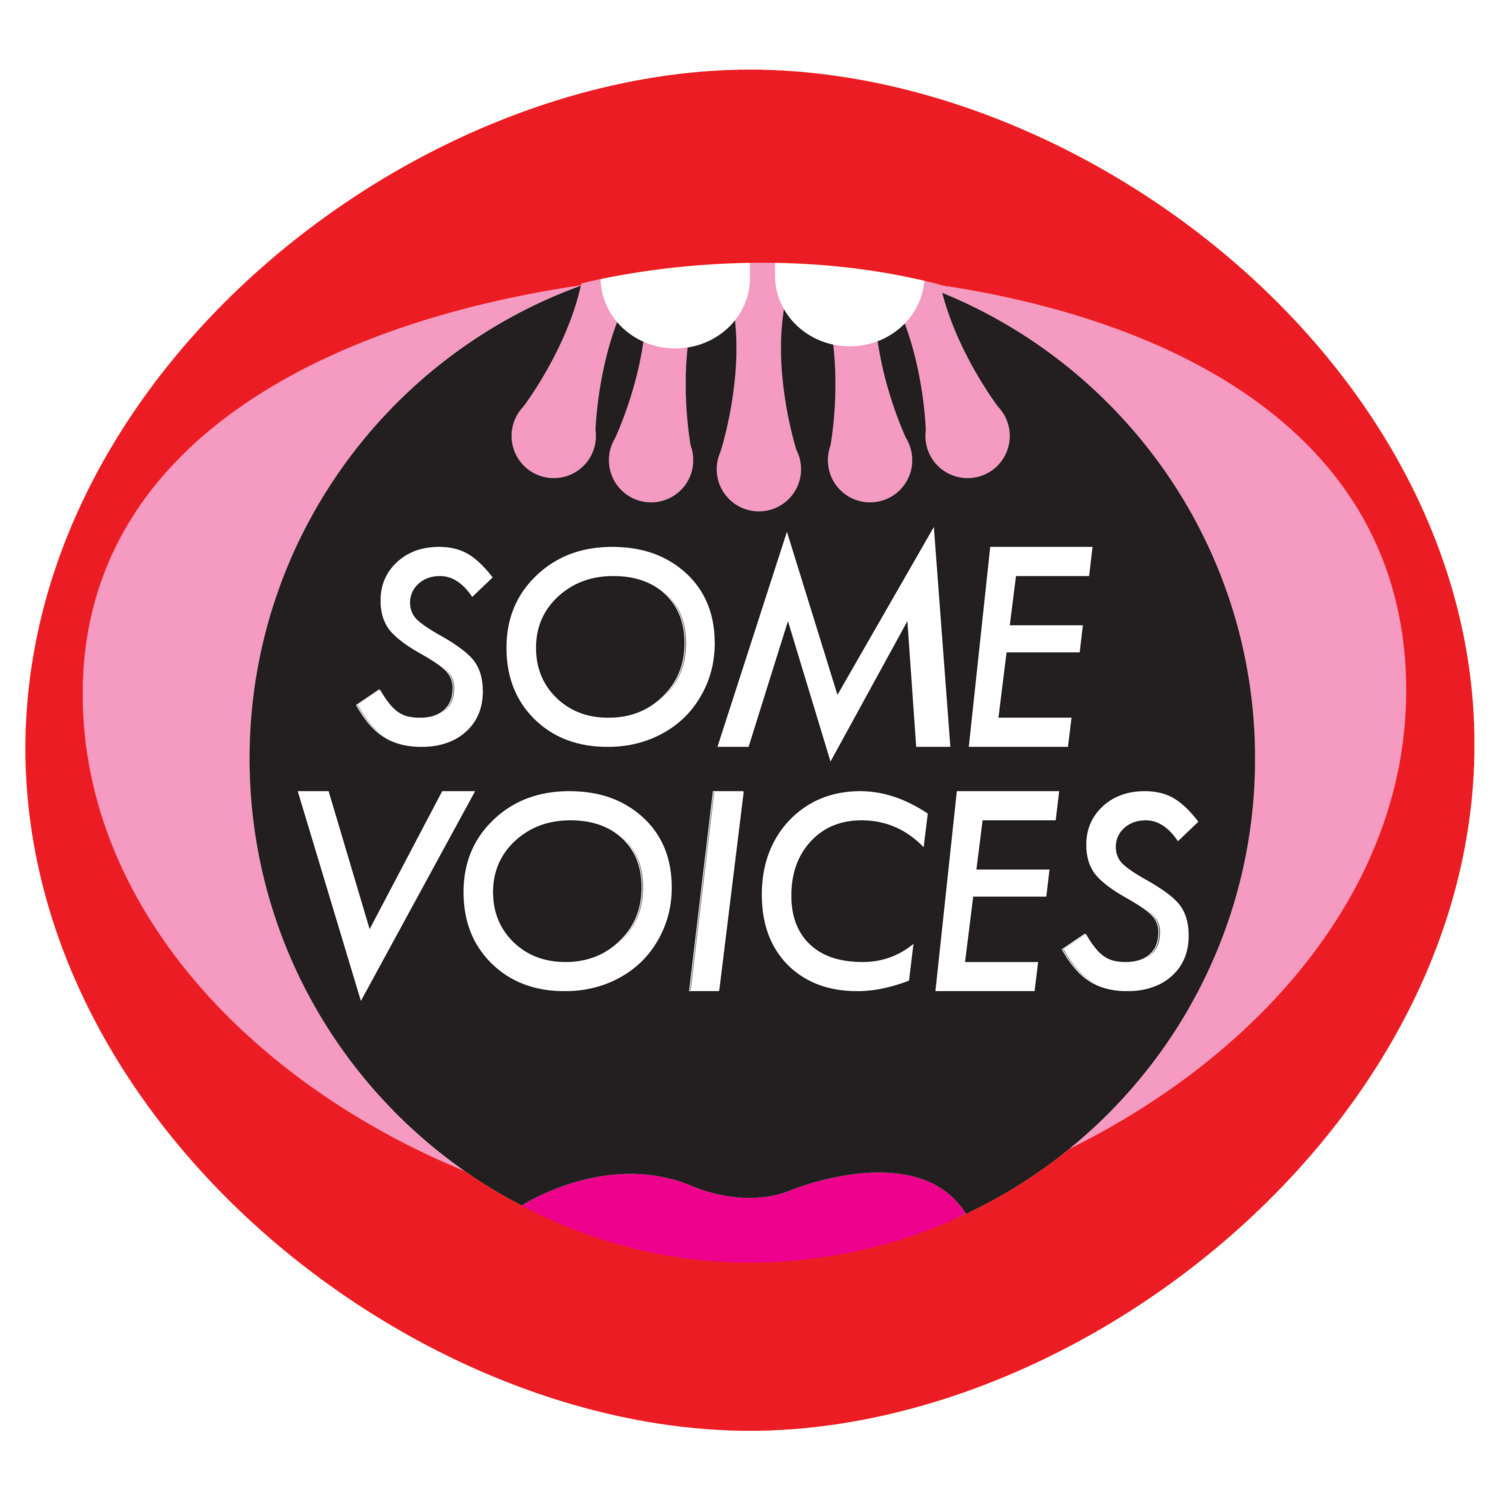 Some Voices London based Non-Audition Choir